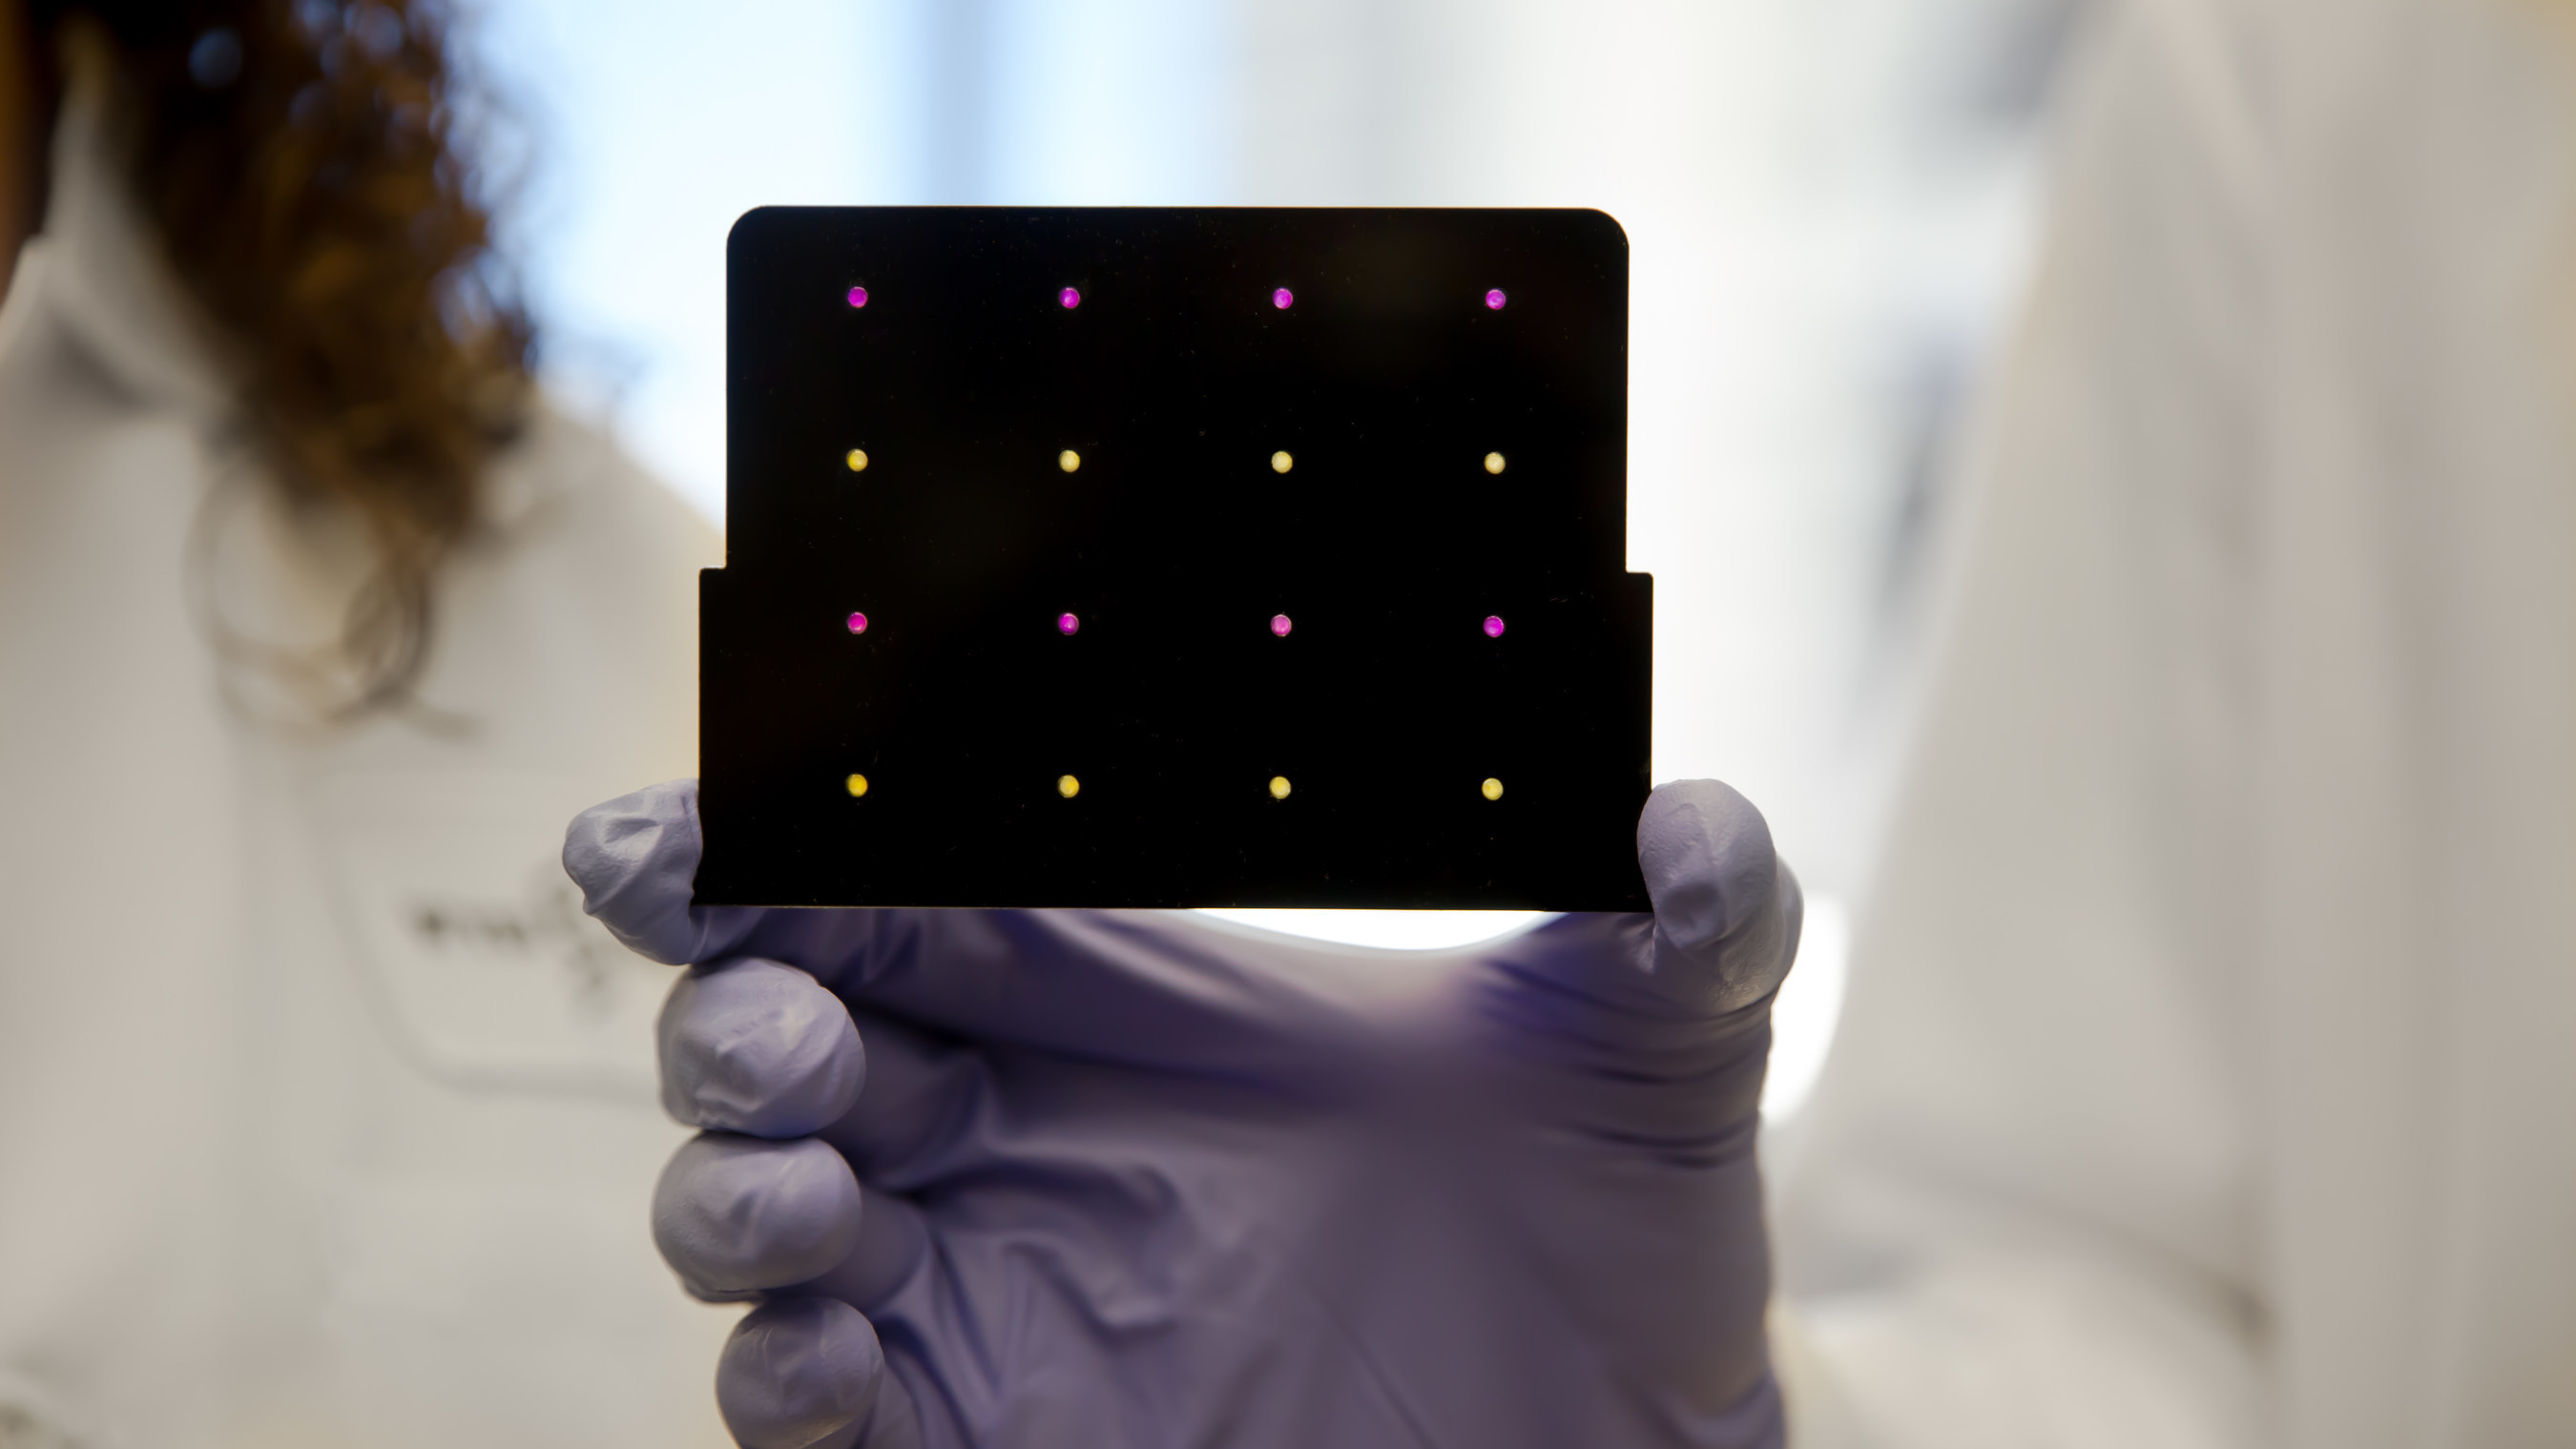 A black cartridge containing a paper-based diagnostic for detecting the Zika virus is held up by a researcher at Harvard's Wyss Institute. Areas that have turned purple indicate samples infected with Zika, while yellow areas indicate samples that are free of the virus. Credit: Wyss Institute at Harvard University